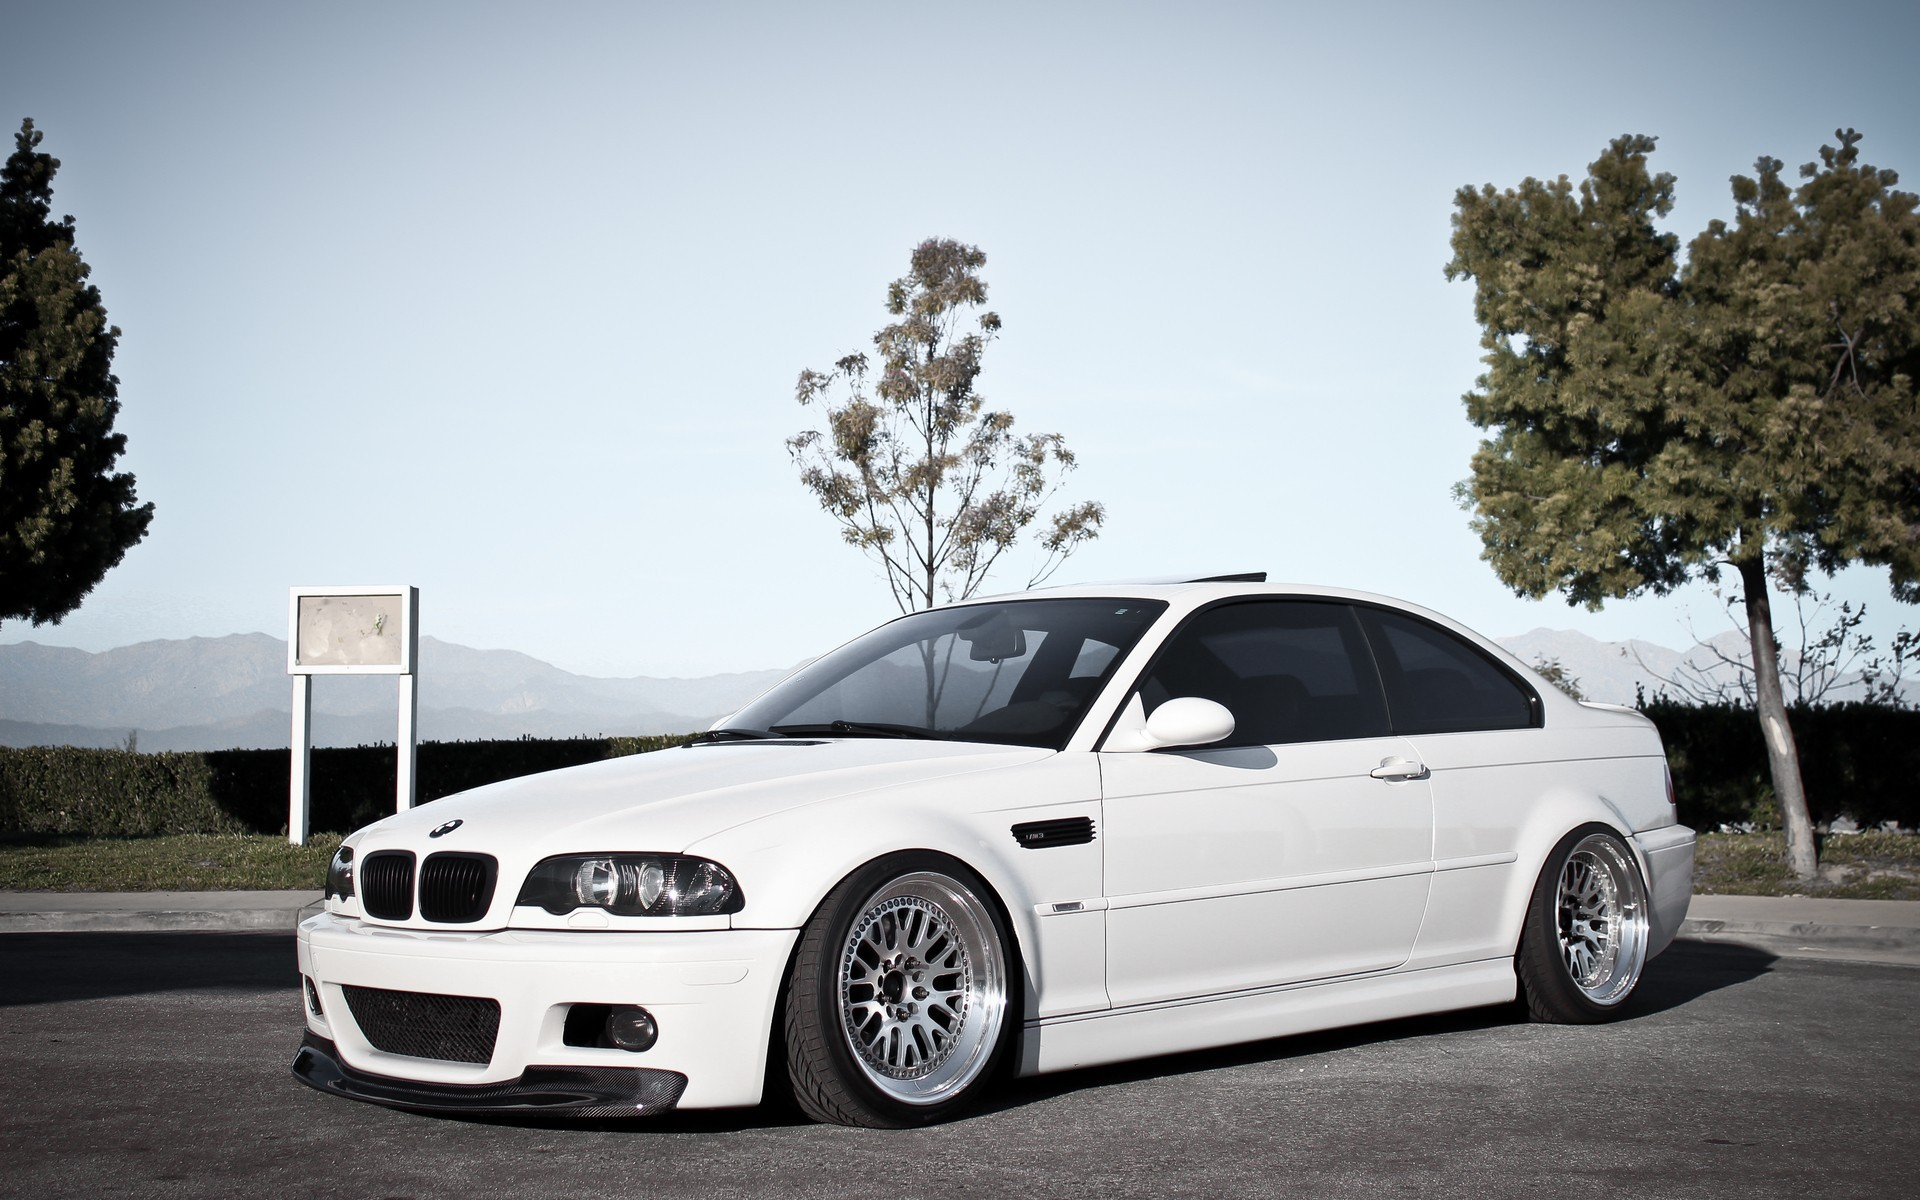 Bmw cars auto e46 wallpaper allwallpaper 14678 pc en bmw cars auto e46 wallpaper voltagebd Gallery